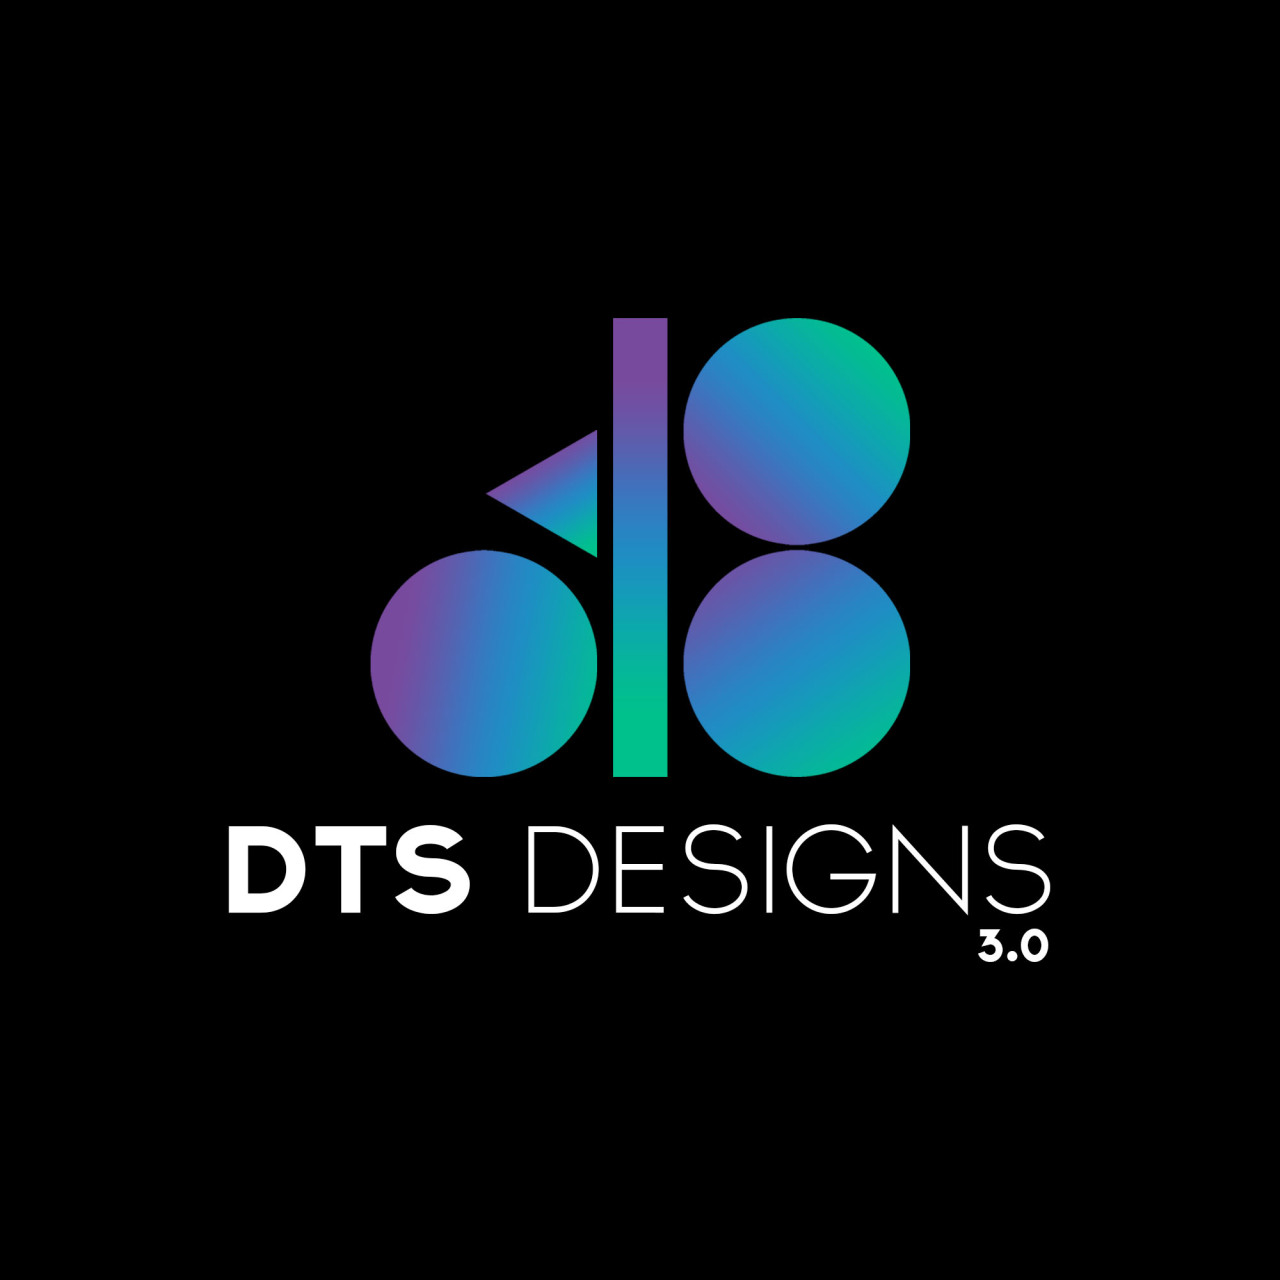 Releasing DTS Designs 3.0 to the public tonight. This is the biggest change to the identity of DTS Designs since the release of the 'disc' identity way back in 2010. I have developed a lot as an artist since that point and I believe the community has also. As I enter this new era with DTS Designs, I myself will be developing my own set of design skills as I am now attending University and taking a course in Visual Communication. I look forward to furthering my skills and involving myself in some wonderful exercises and projects. Stay tuned for more developments!